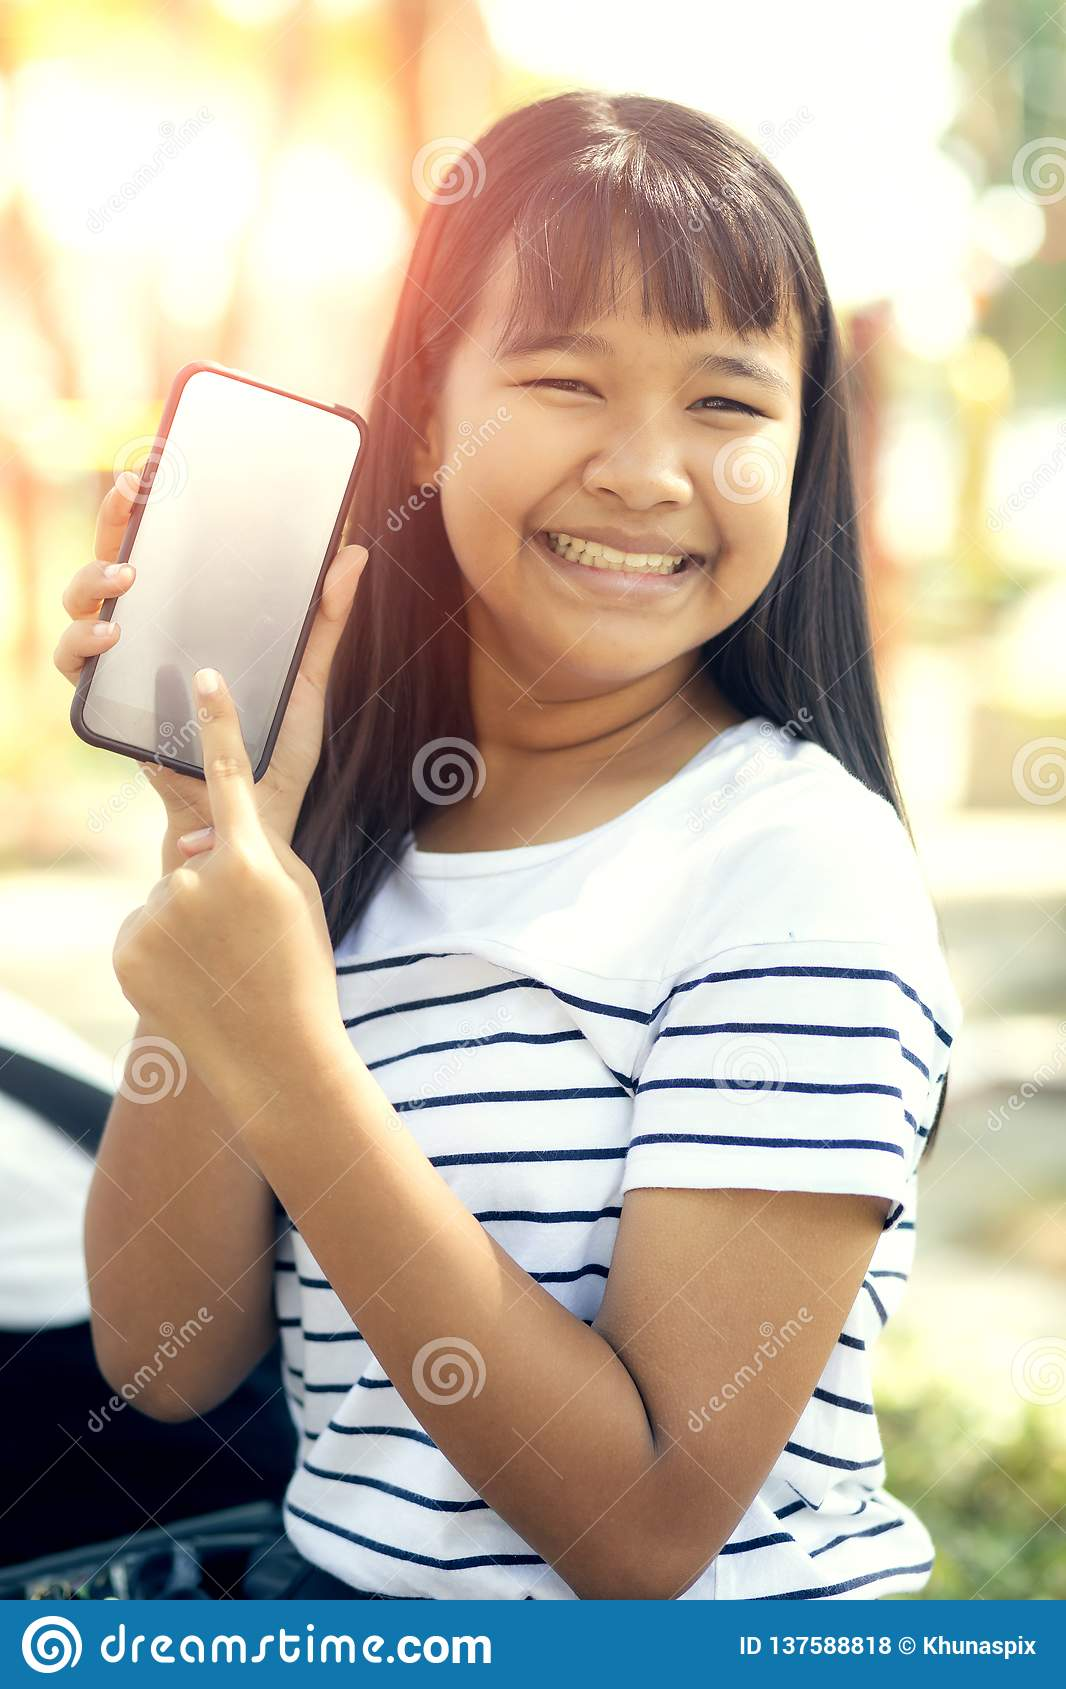 Asian teenager show white screen of smart phone screen and toothy smiling face happiness emotion